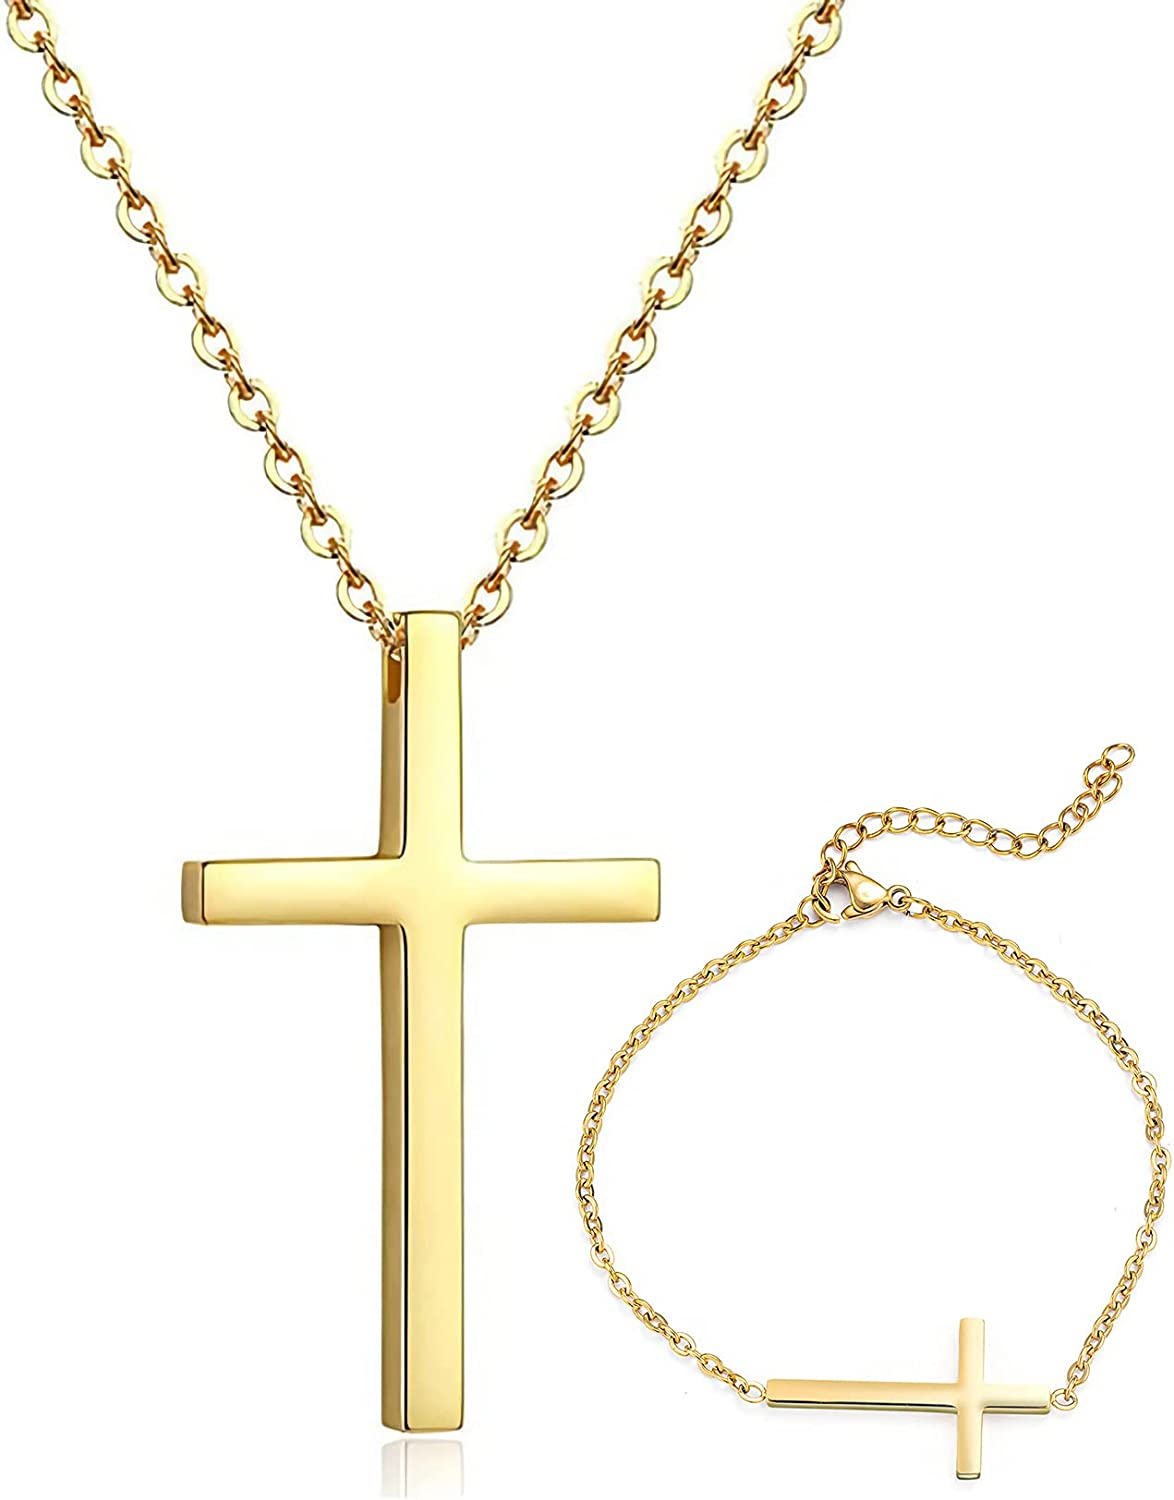 Wowsweet Classic Religious Cross Pendant Stainless Steel Necklace Adjustable Link Chain Hallow Bracelets for Men Women